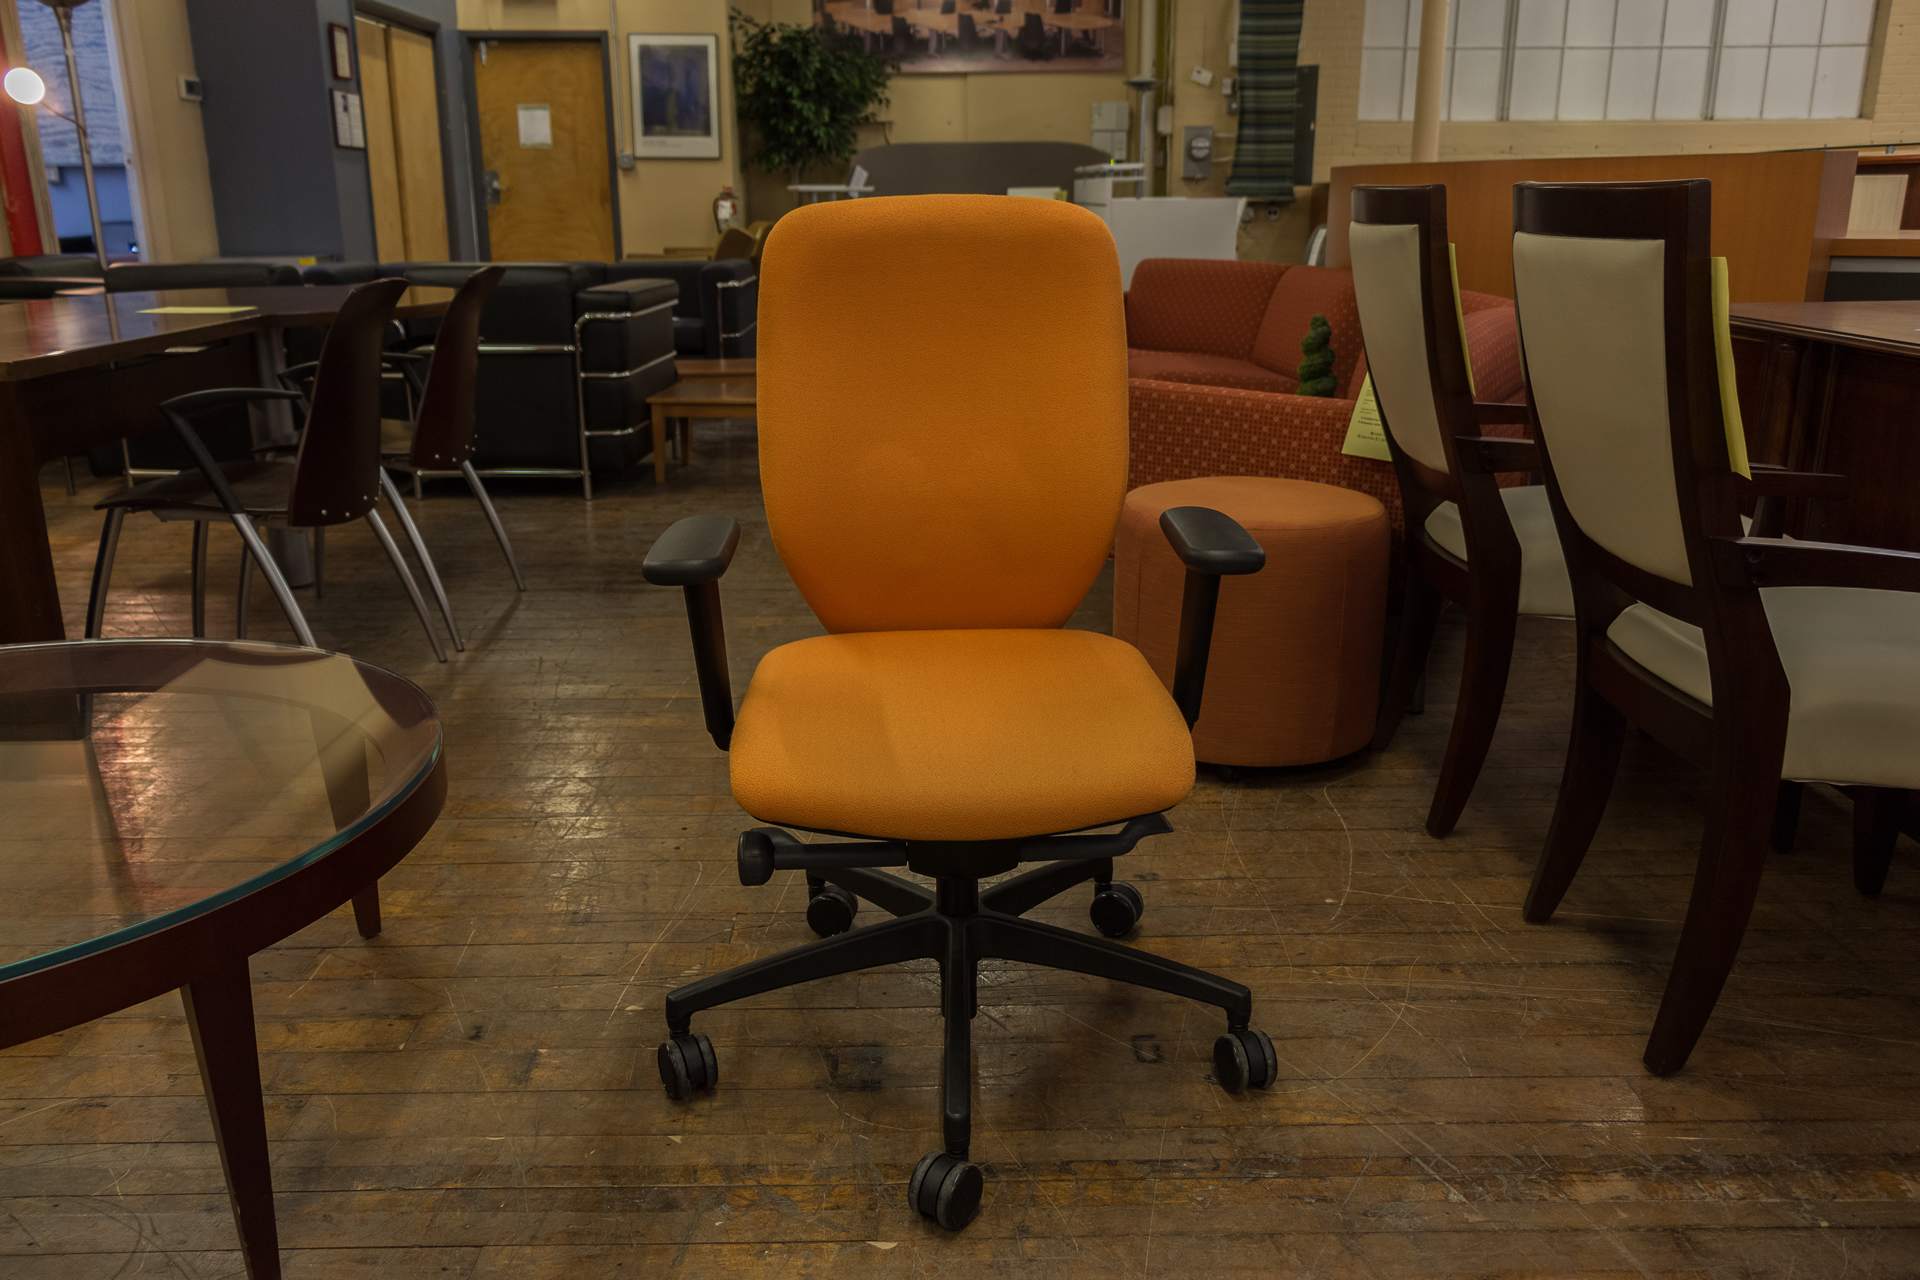 peartreeofficefurniture_peartreeofficefurniture_peartreeofficefurniture_boss-design-multi-function-task-chairs-in-red-blue-and-orange.jpg